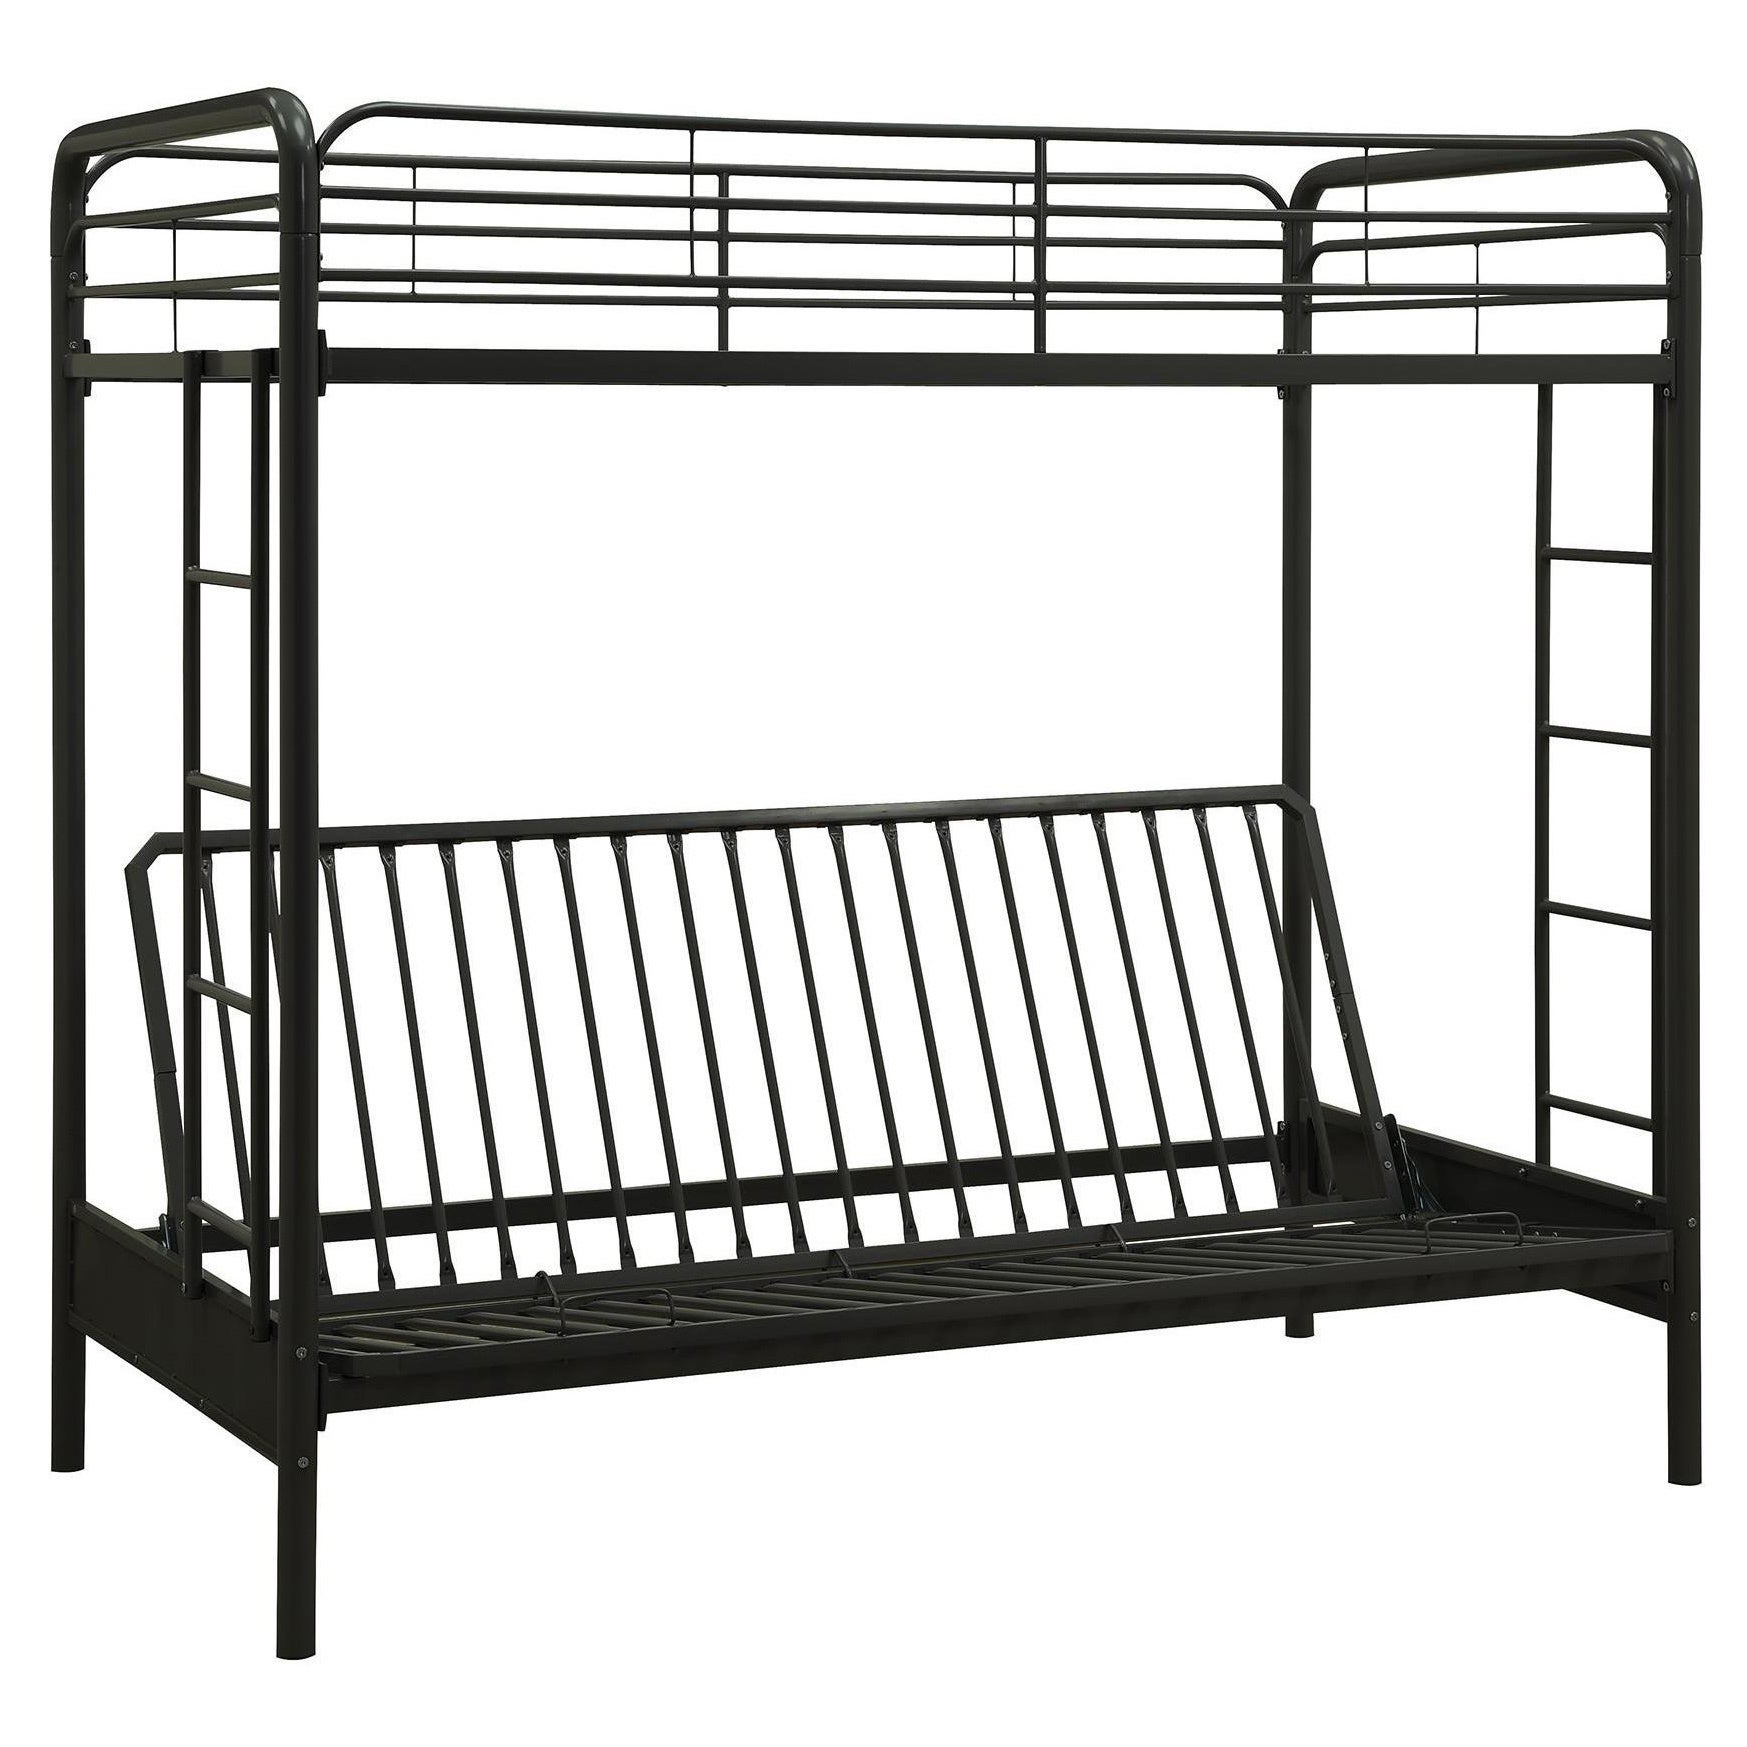 Dhp Twin Over Futon Black Metal Bunk Bed On Sale Overstock 9459648